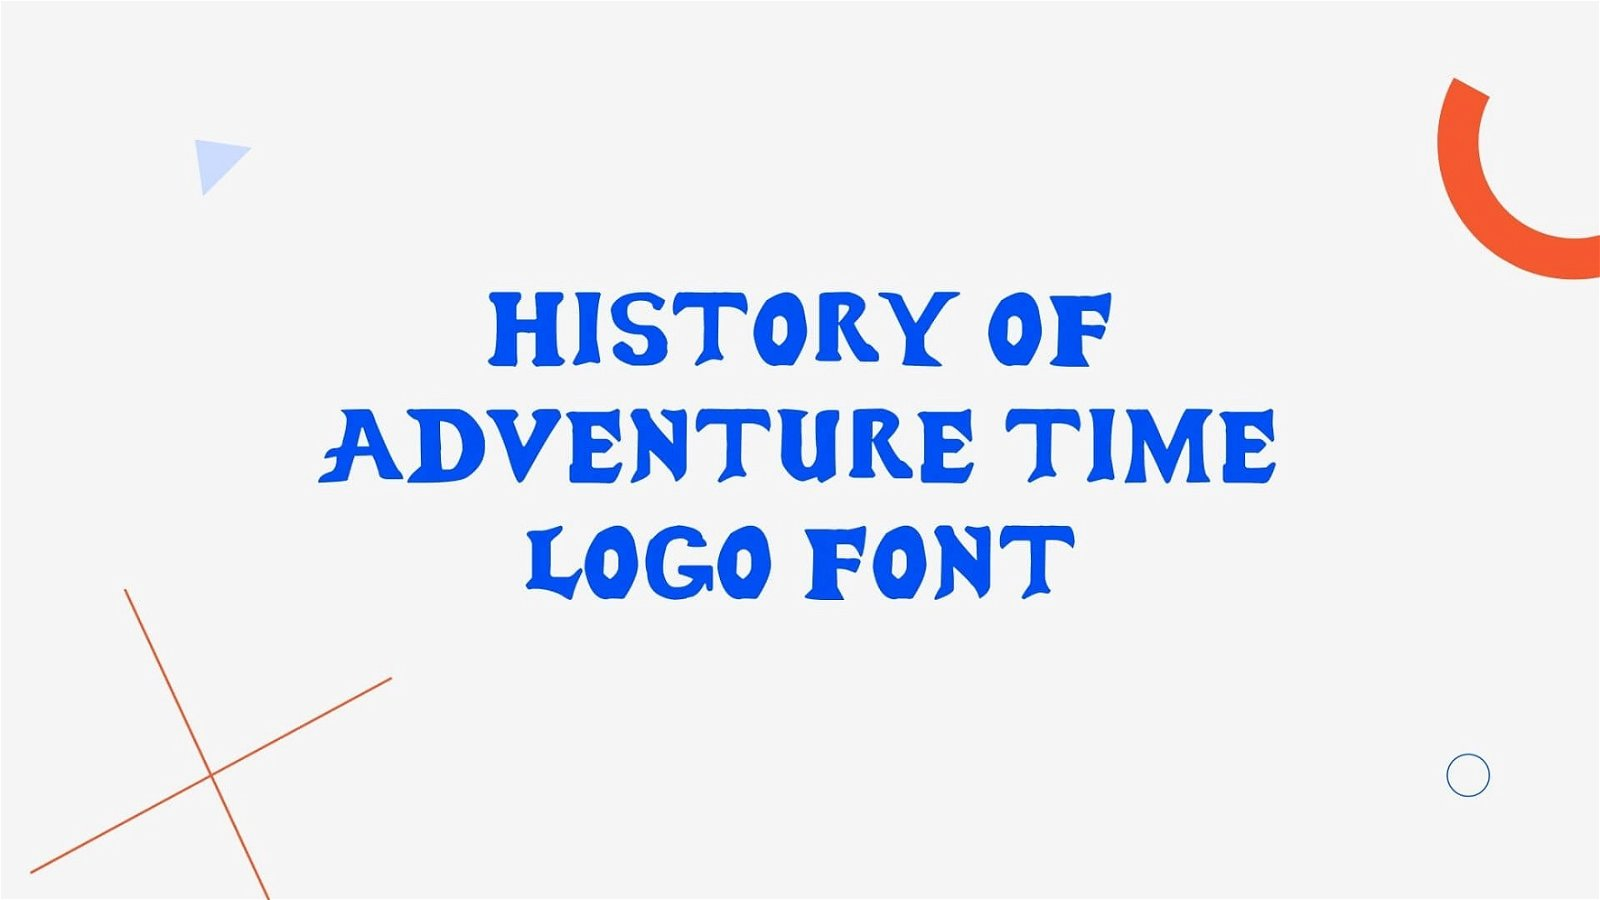 History of Adventure Time Logo Font